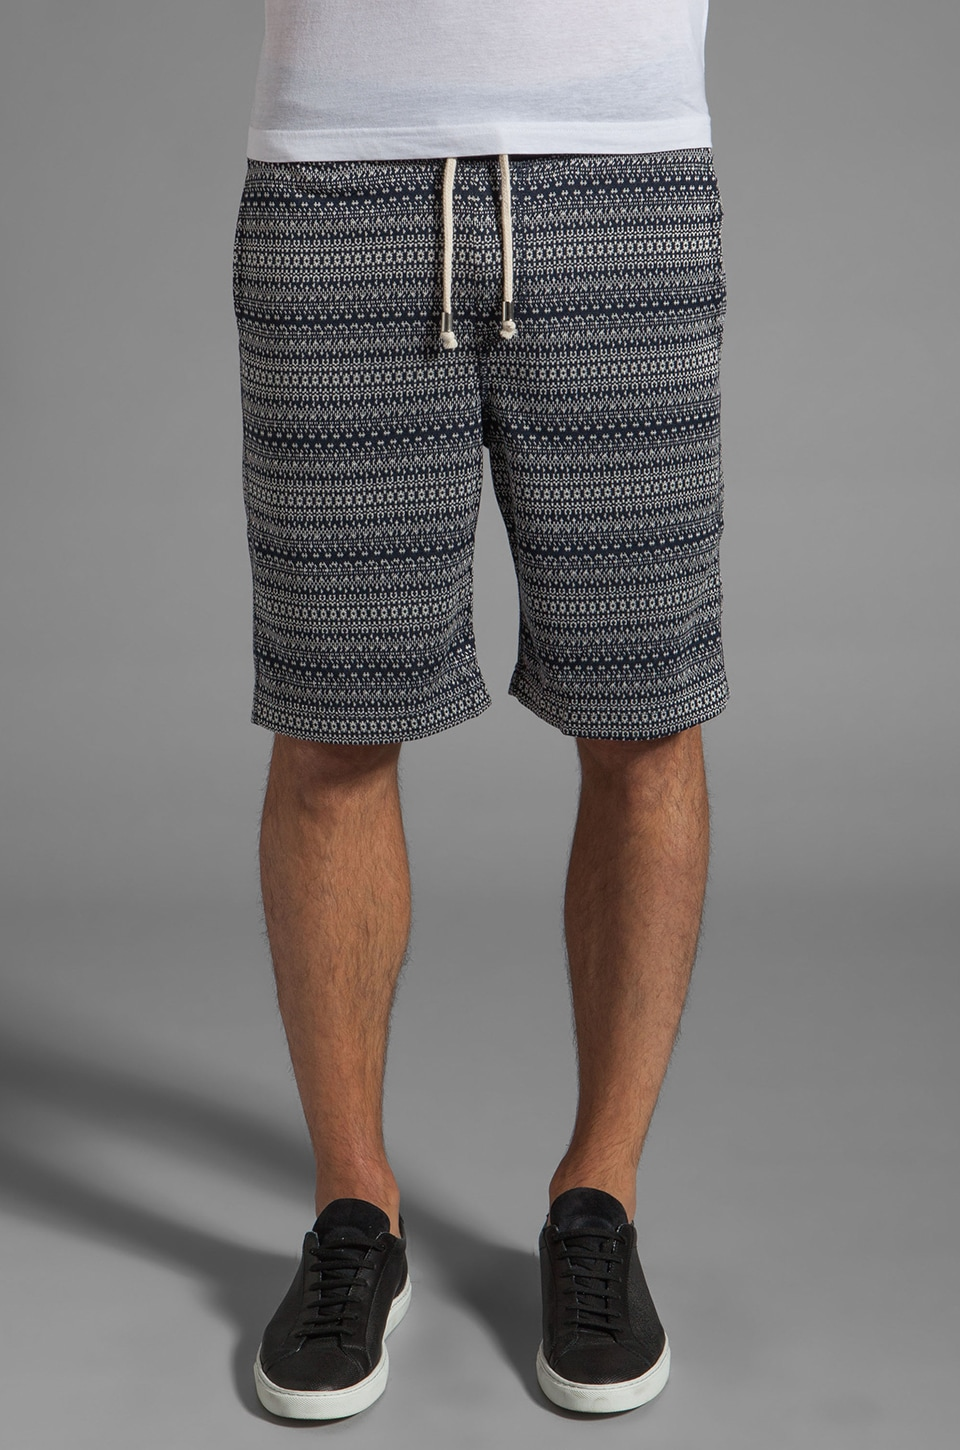 Shades of Grey by Micah Cohen Sweatshort in Navy Winter Knit